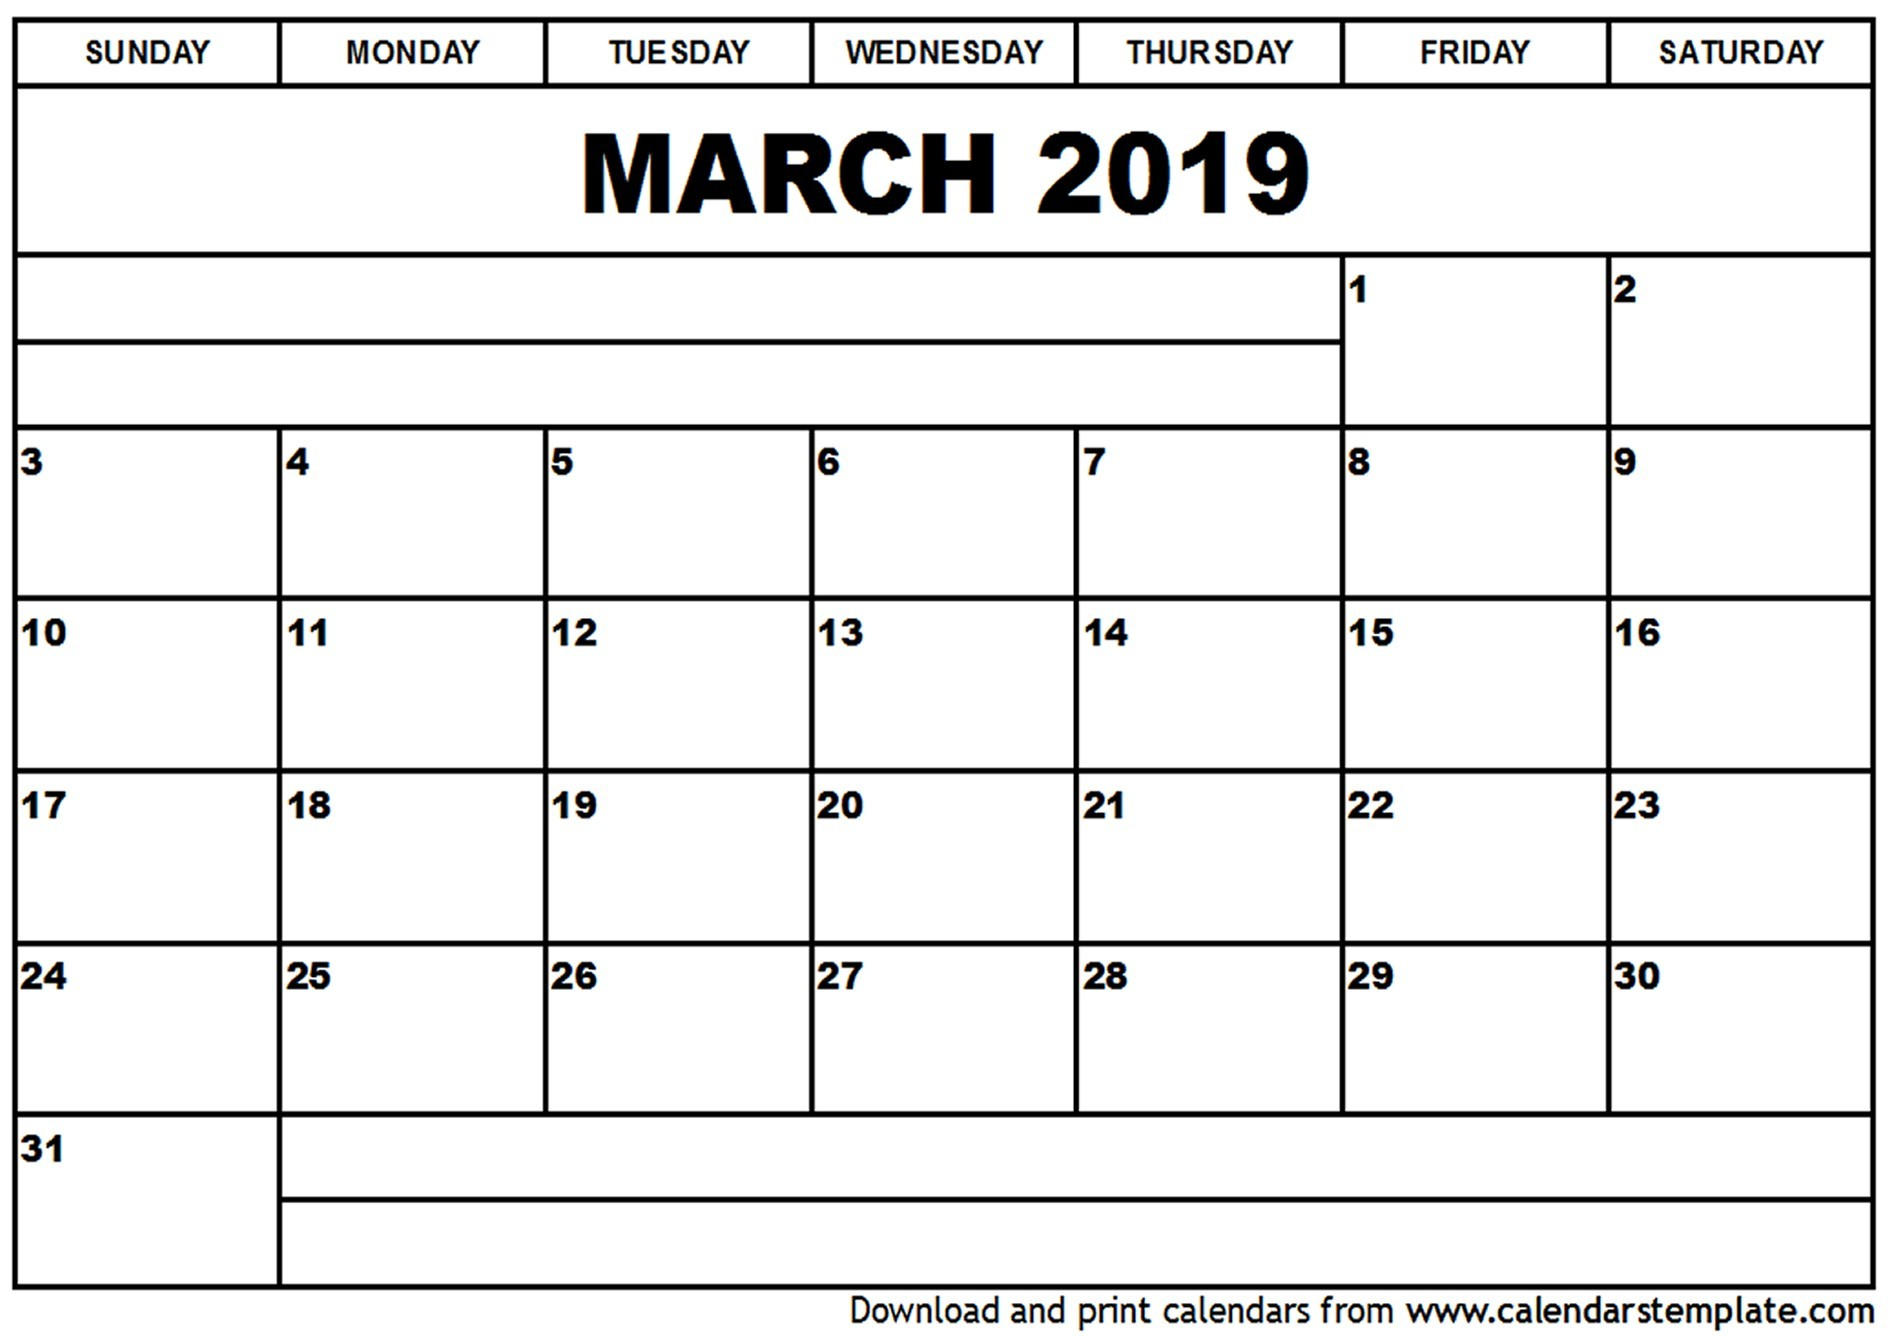 March Holiday Calendar 2019 Más Actual Download Get Free March 2019 Calendar Printable Template Of March Holiday Calendar 2019 Mejores Y Más Novedosos March 2019 Calendar Printable with Holidays